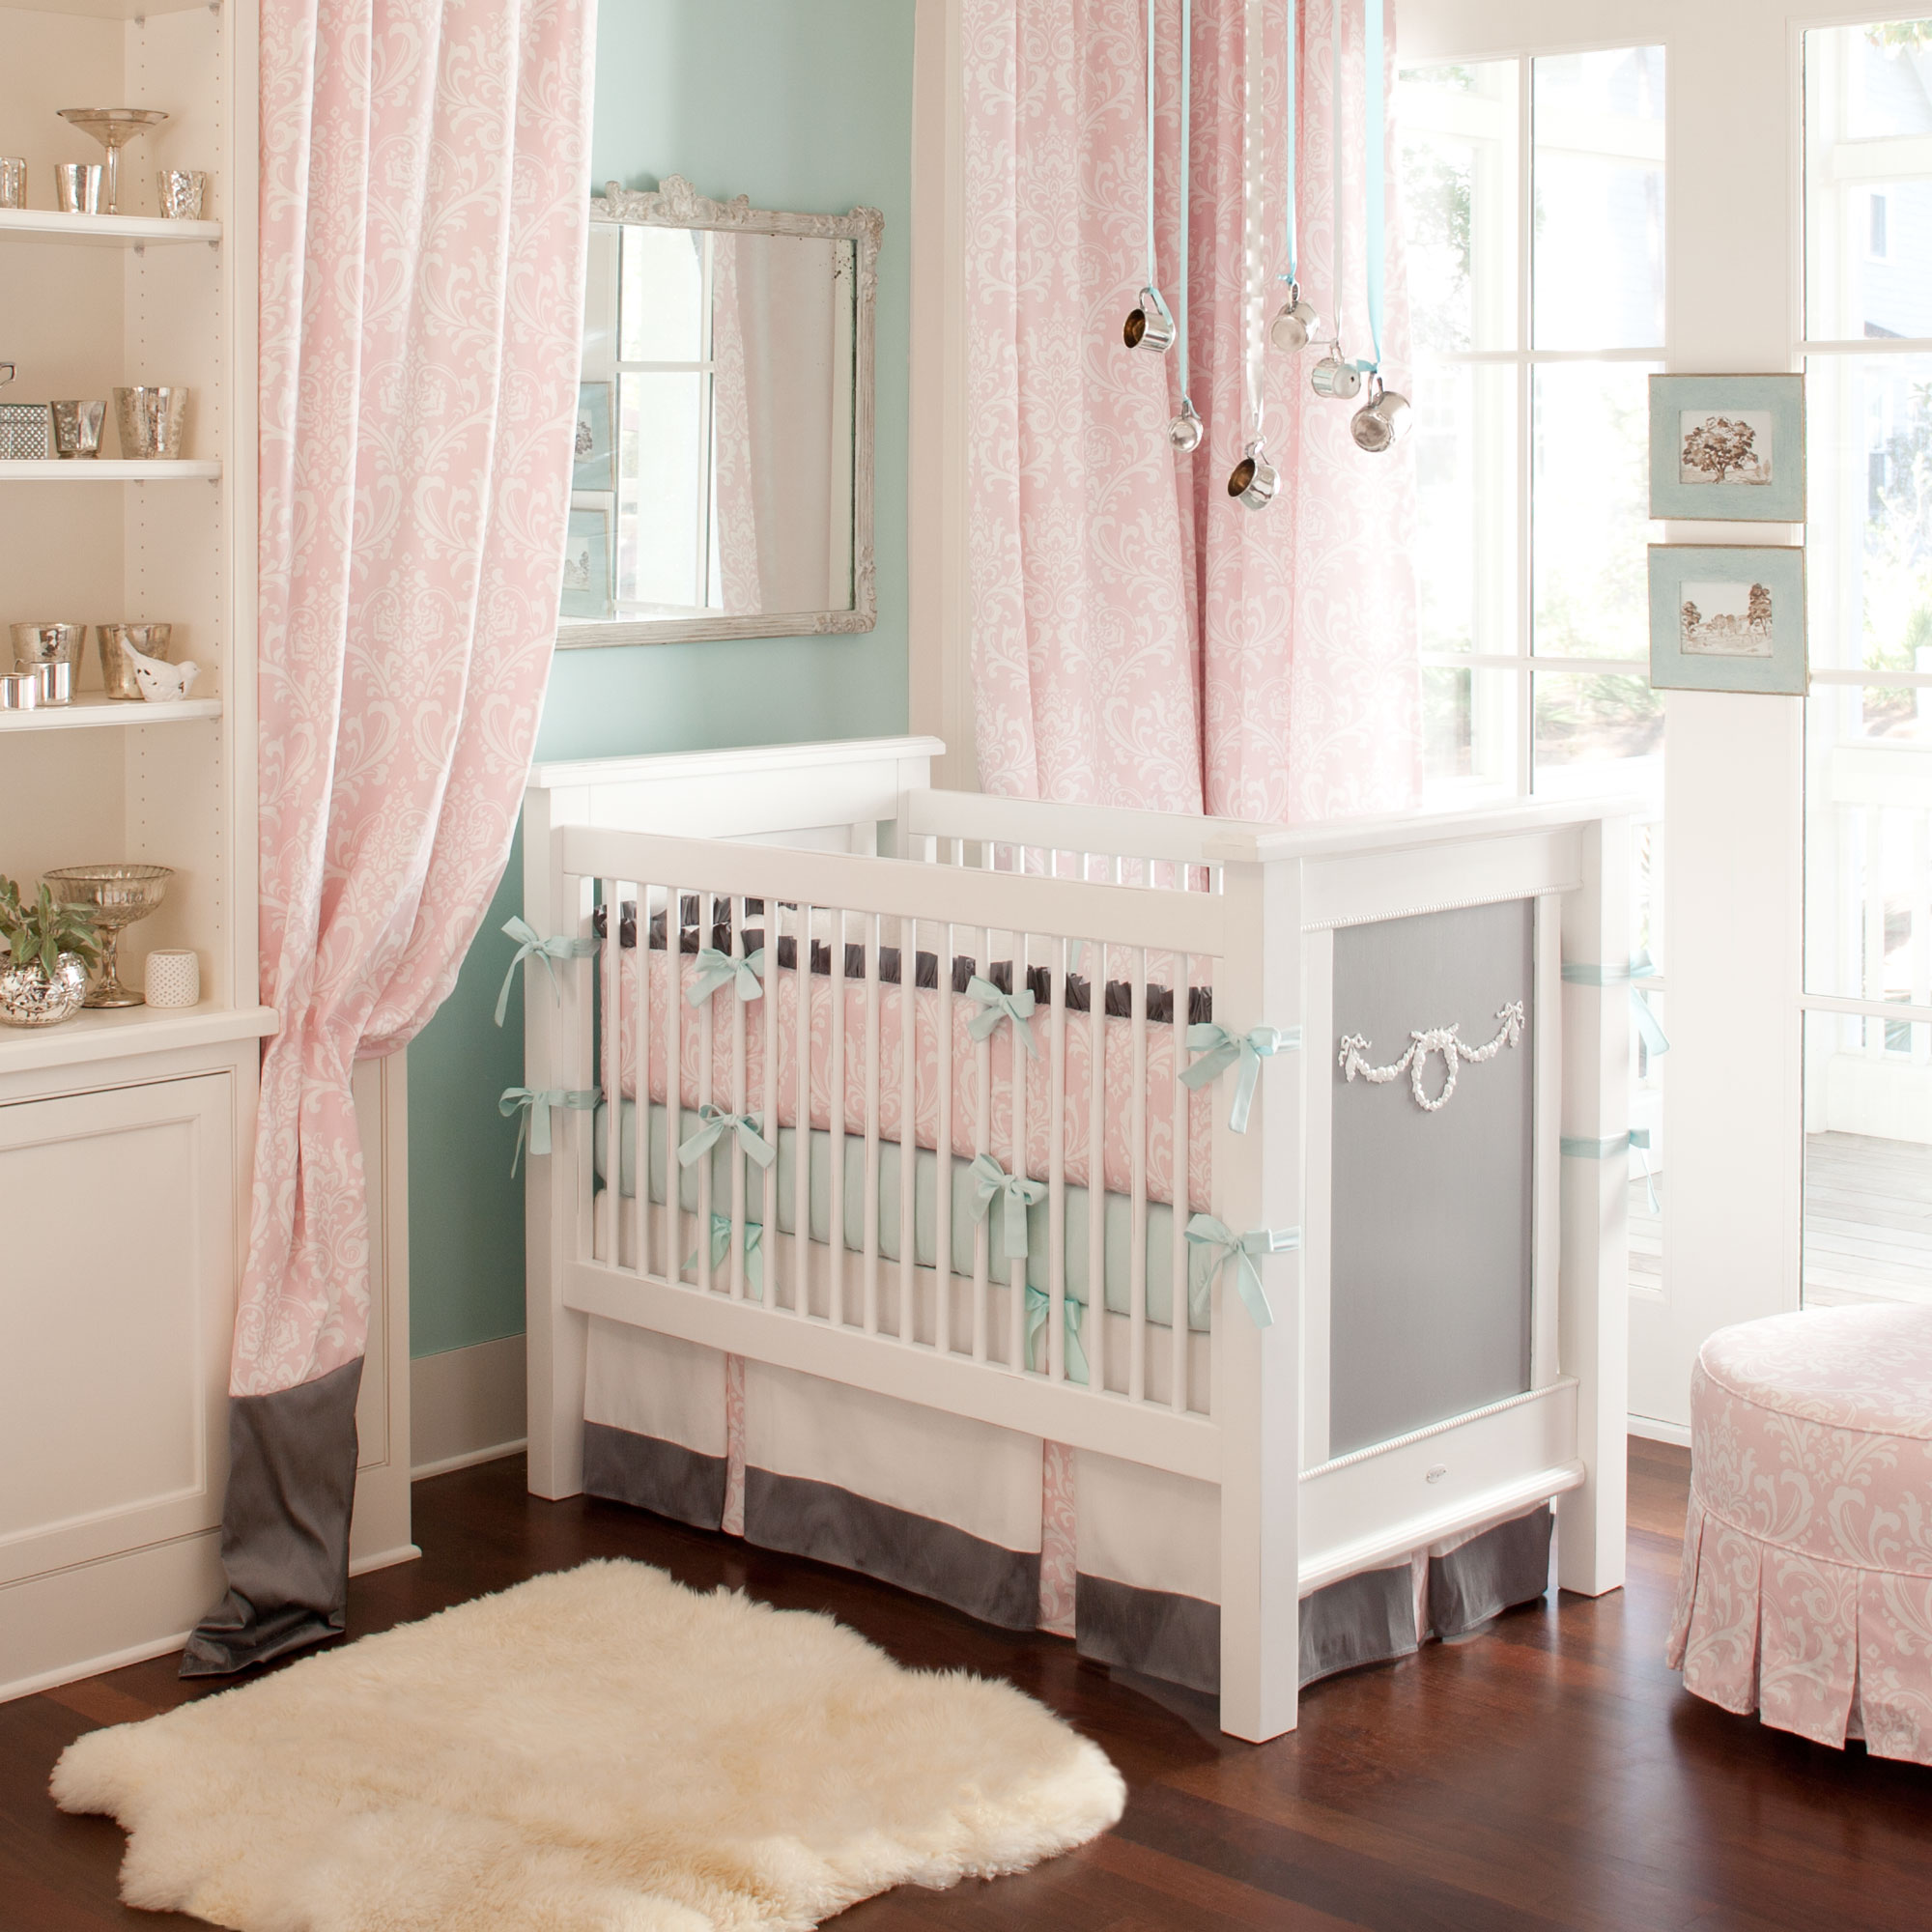 Few Important things you need to know about Baby Bedding Sets